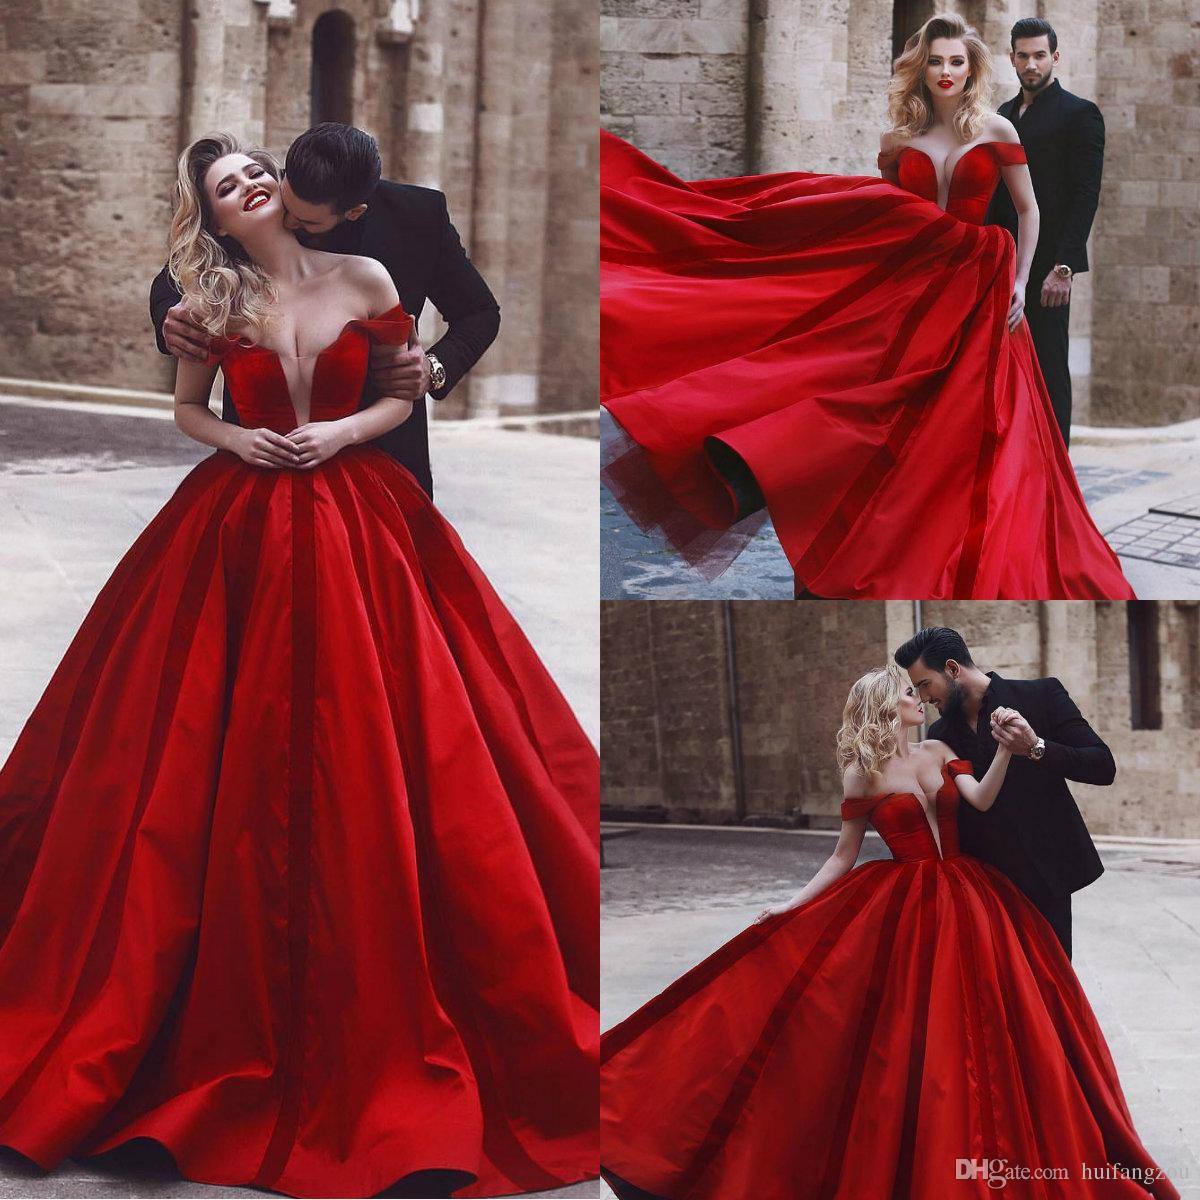 2018 Red Prom Dresses Said Mhamad Off Shoulder Stain Sweep Train Dubai  Arabic Formal Evening Gowns Plus Size Prom Dress Prom Dresses For 11 Year  Olds Prom ... 2c87ef501413